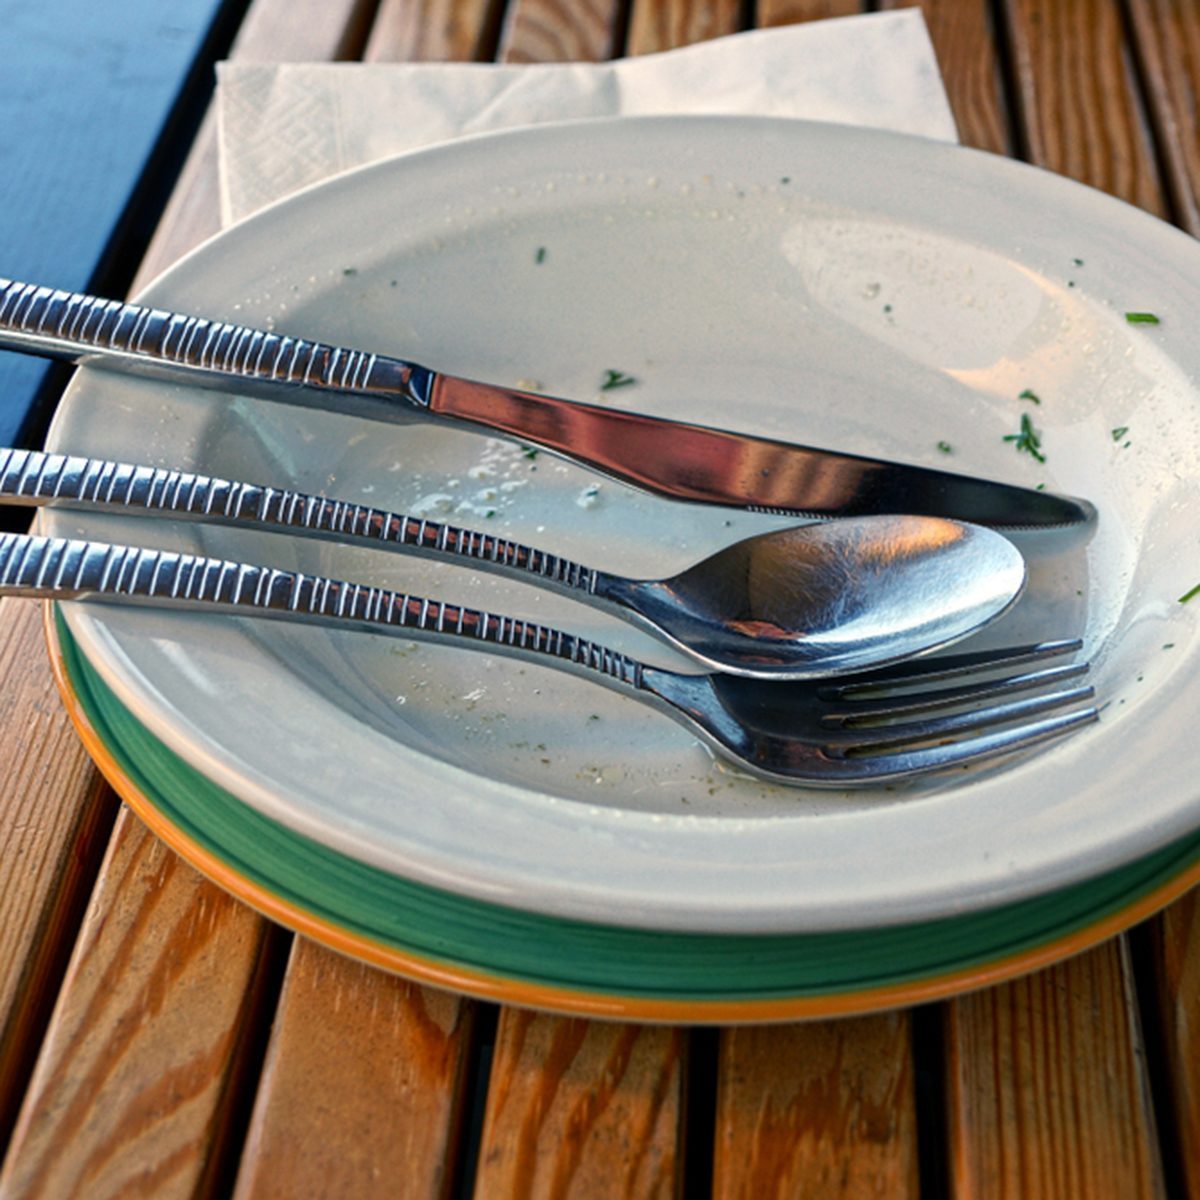 Dirty dishes with cutlery on a brown wooden table